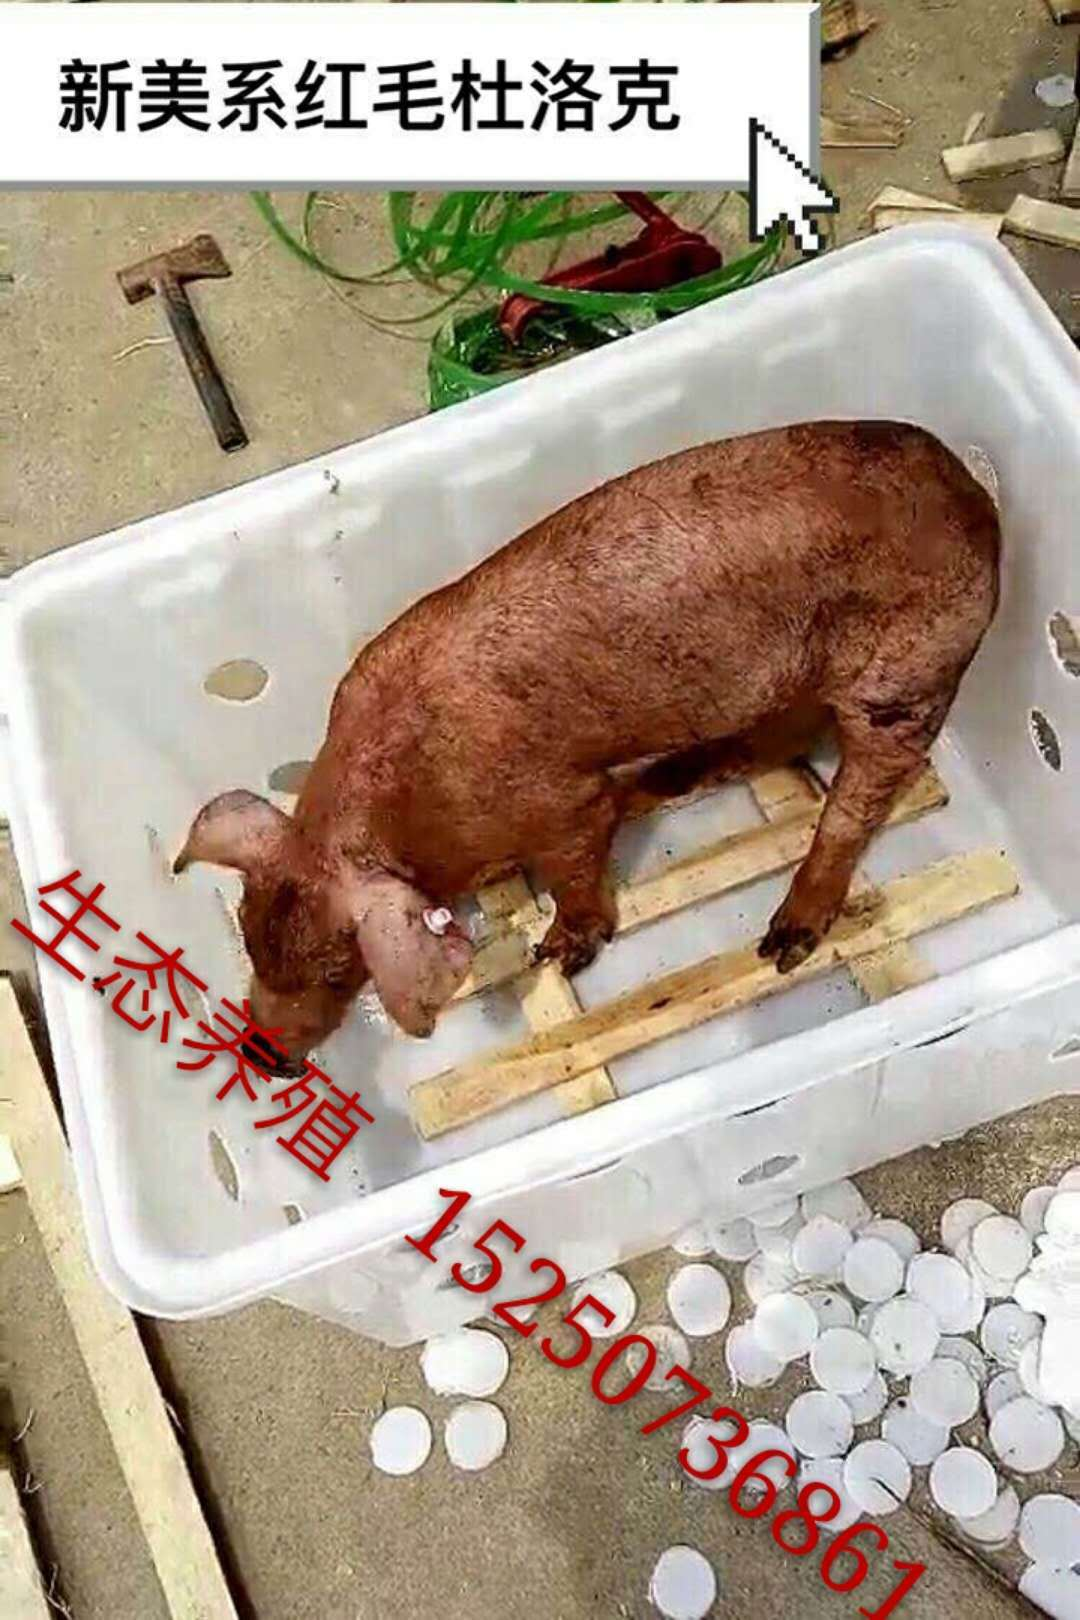 Purebred Duroc sows Sutai Beijing black pig two yuan three yuan sows piglets pigs seedlings shipping about 30 pounds